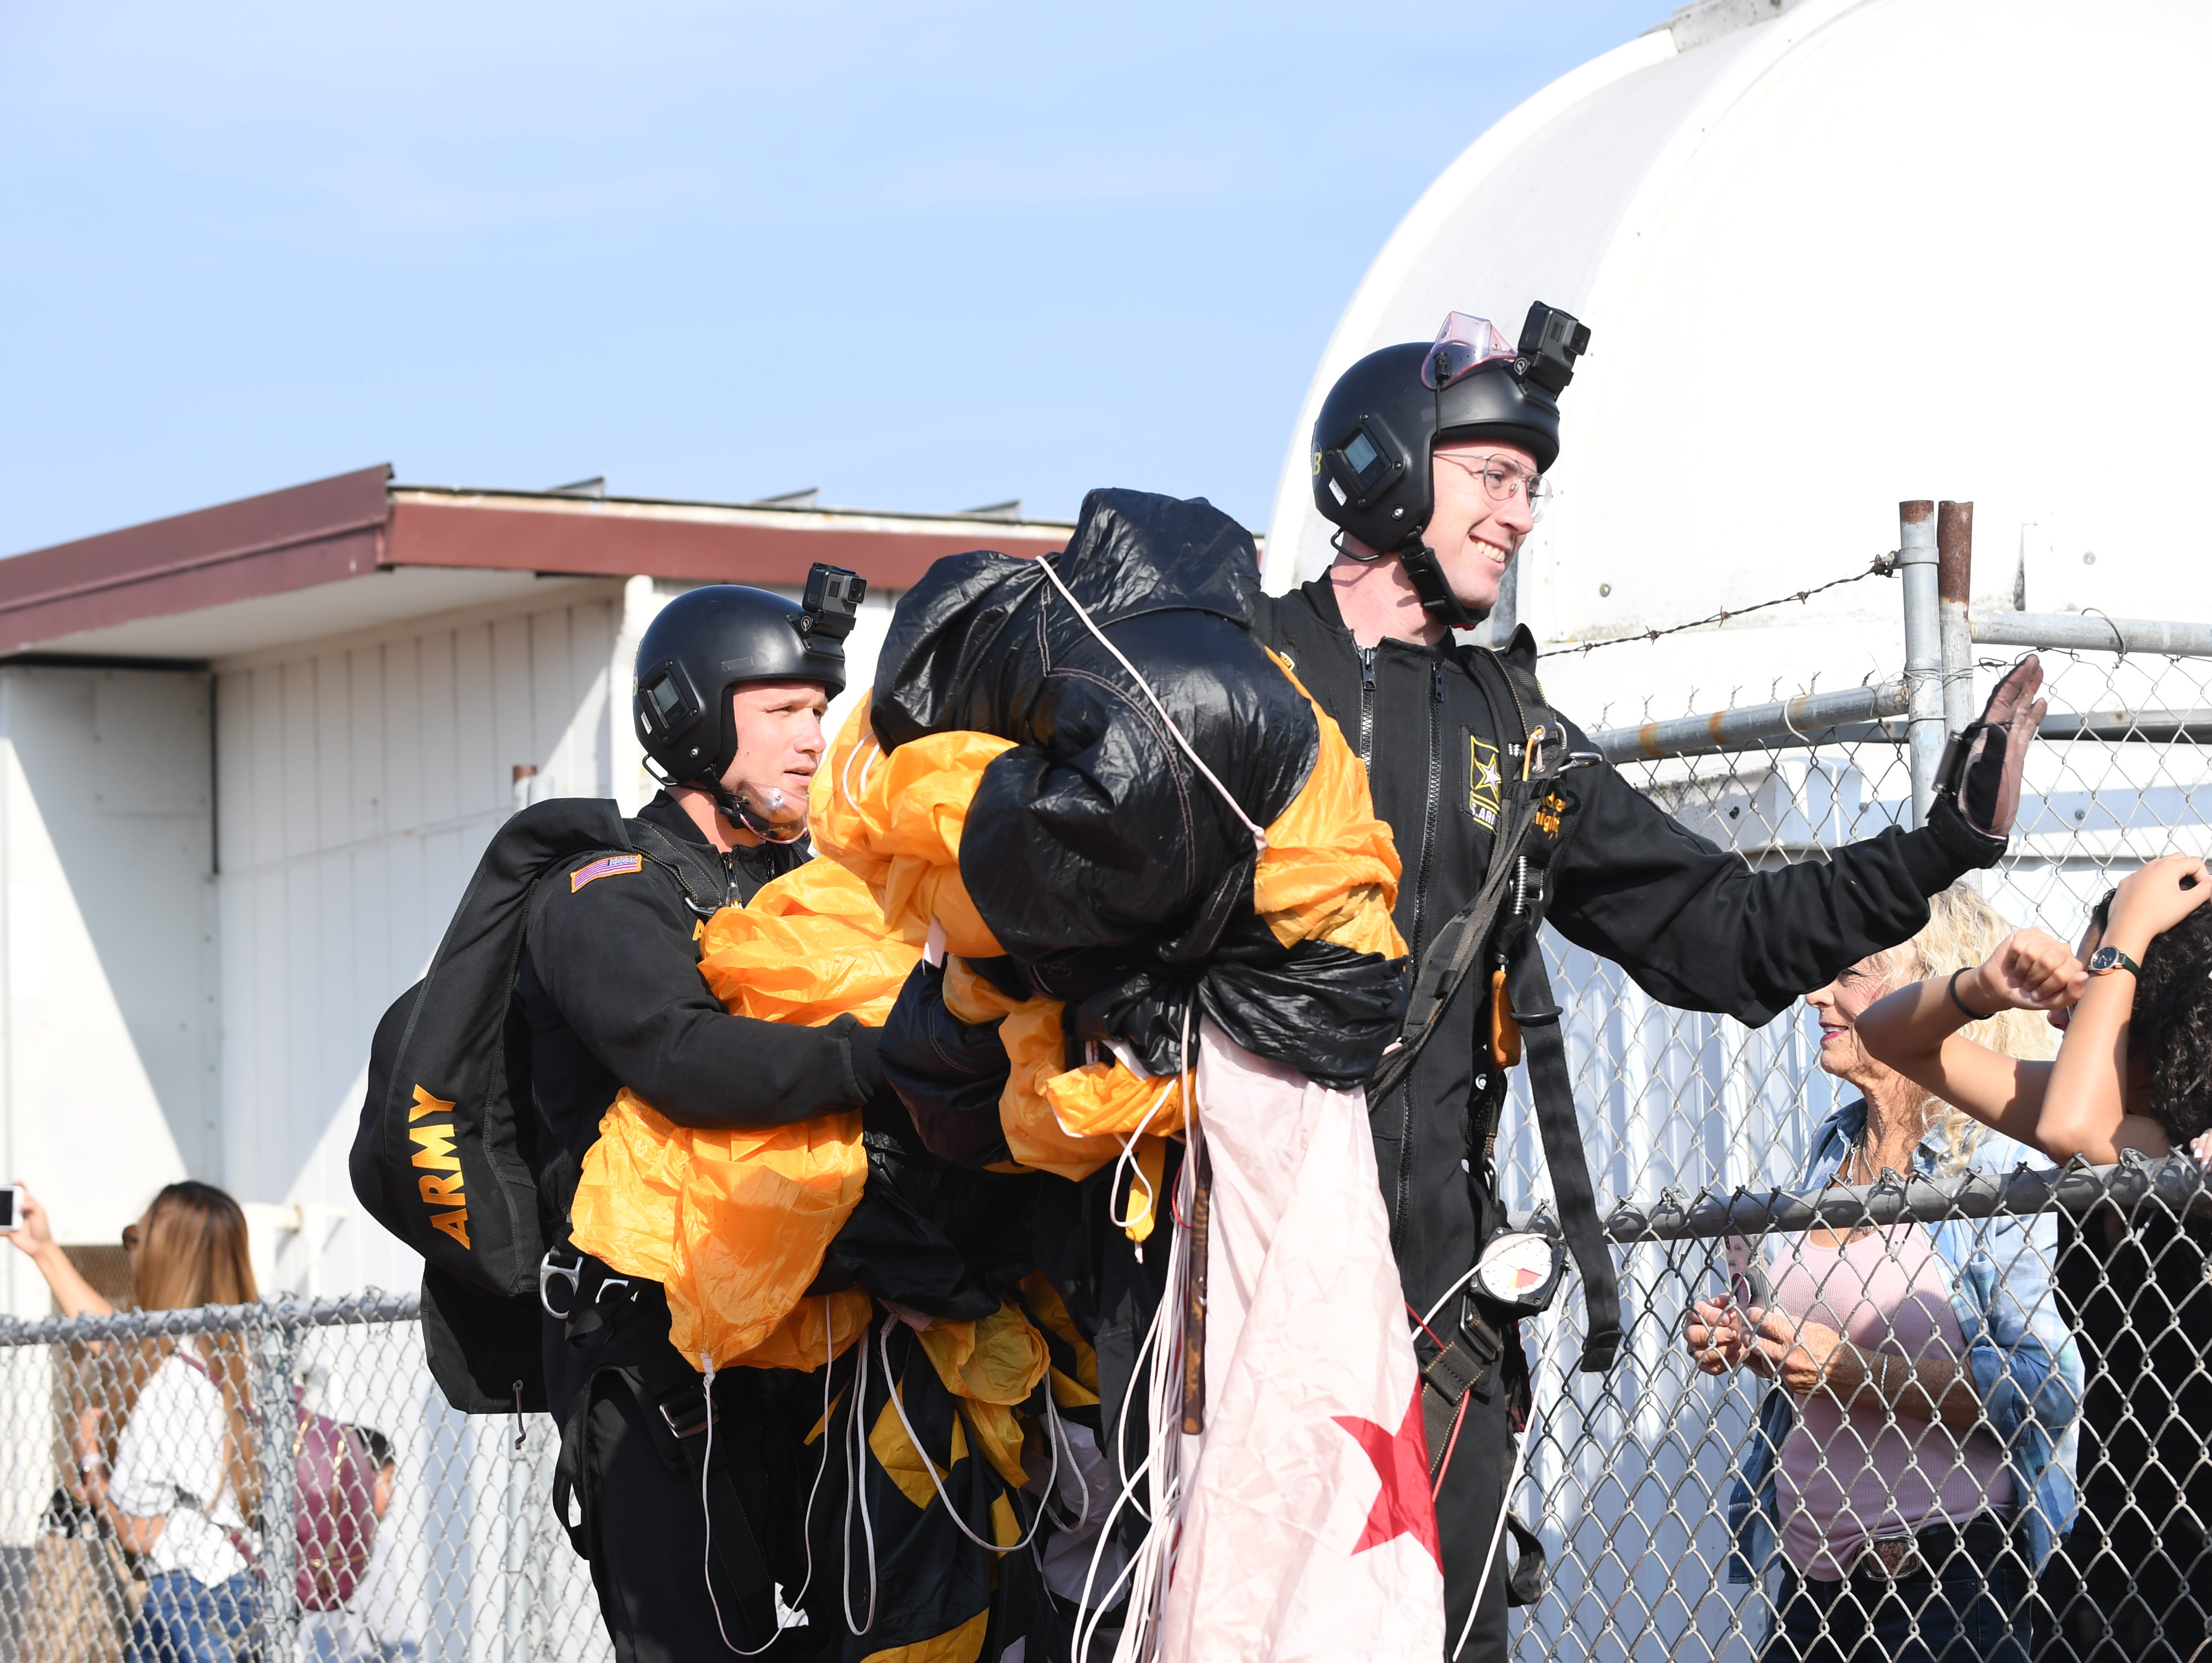 During Sunday's Monterey County Veterans Day Parade, the U.S. Army's Golden Knights paratroopers dropped down to Salinas High School to take part in the event.